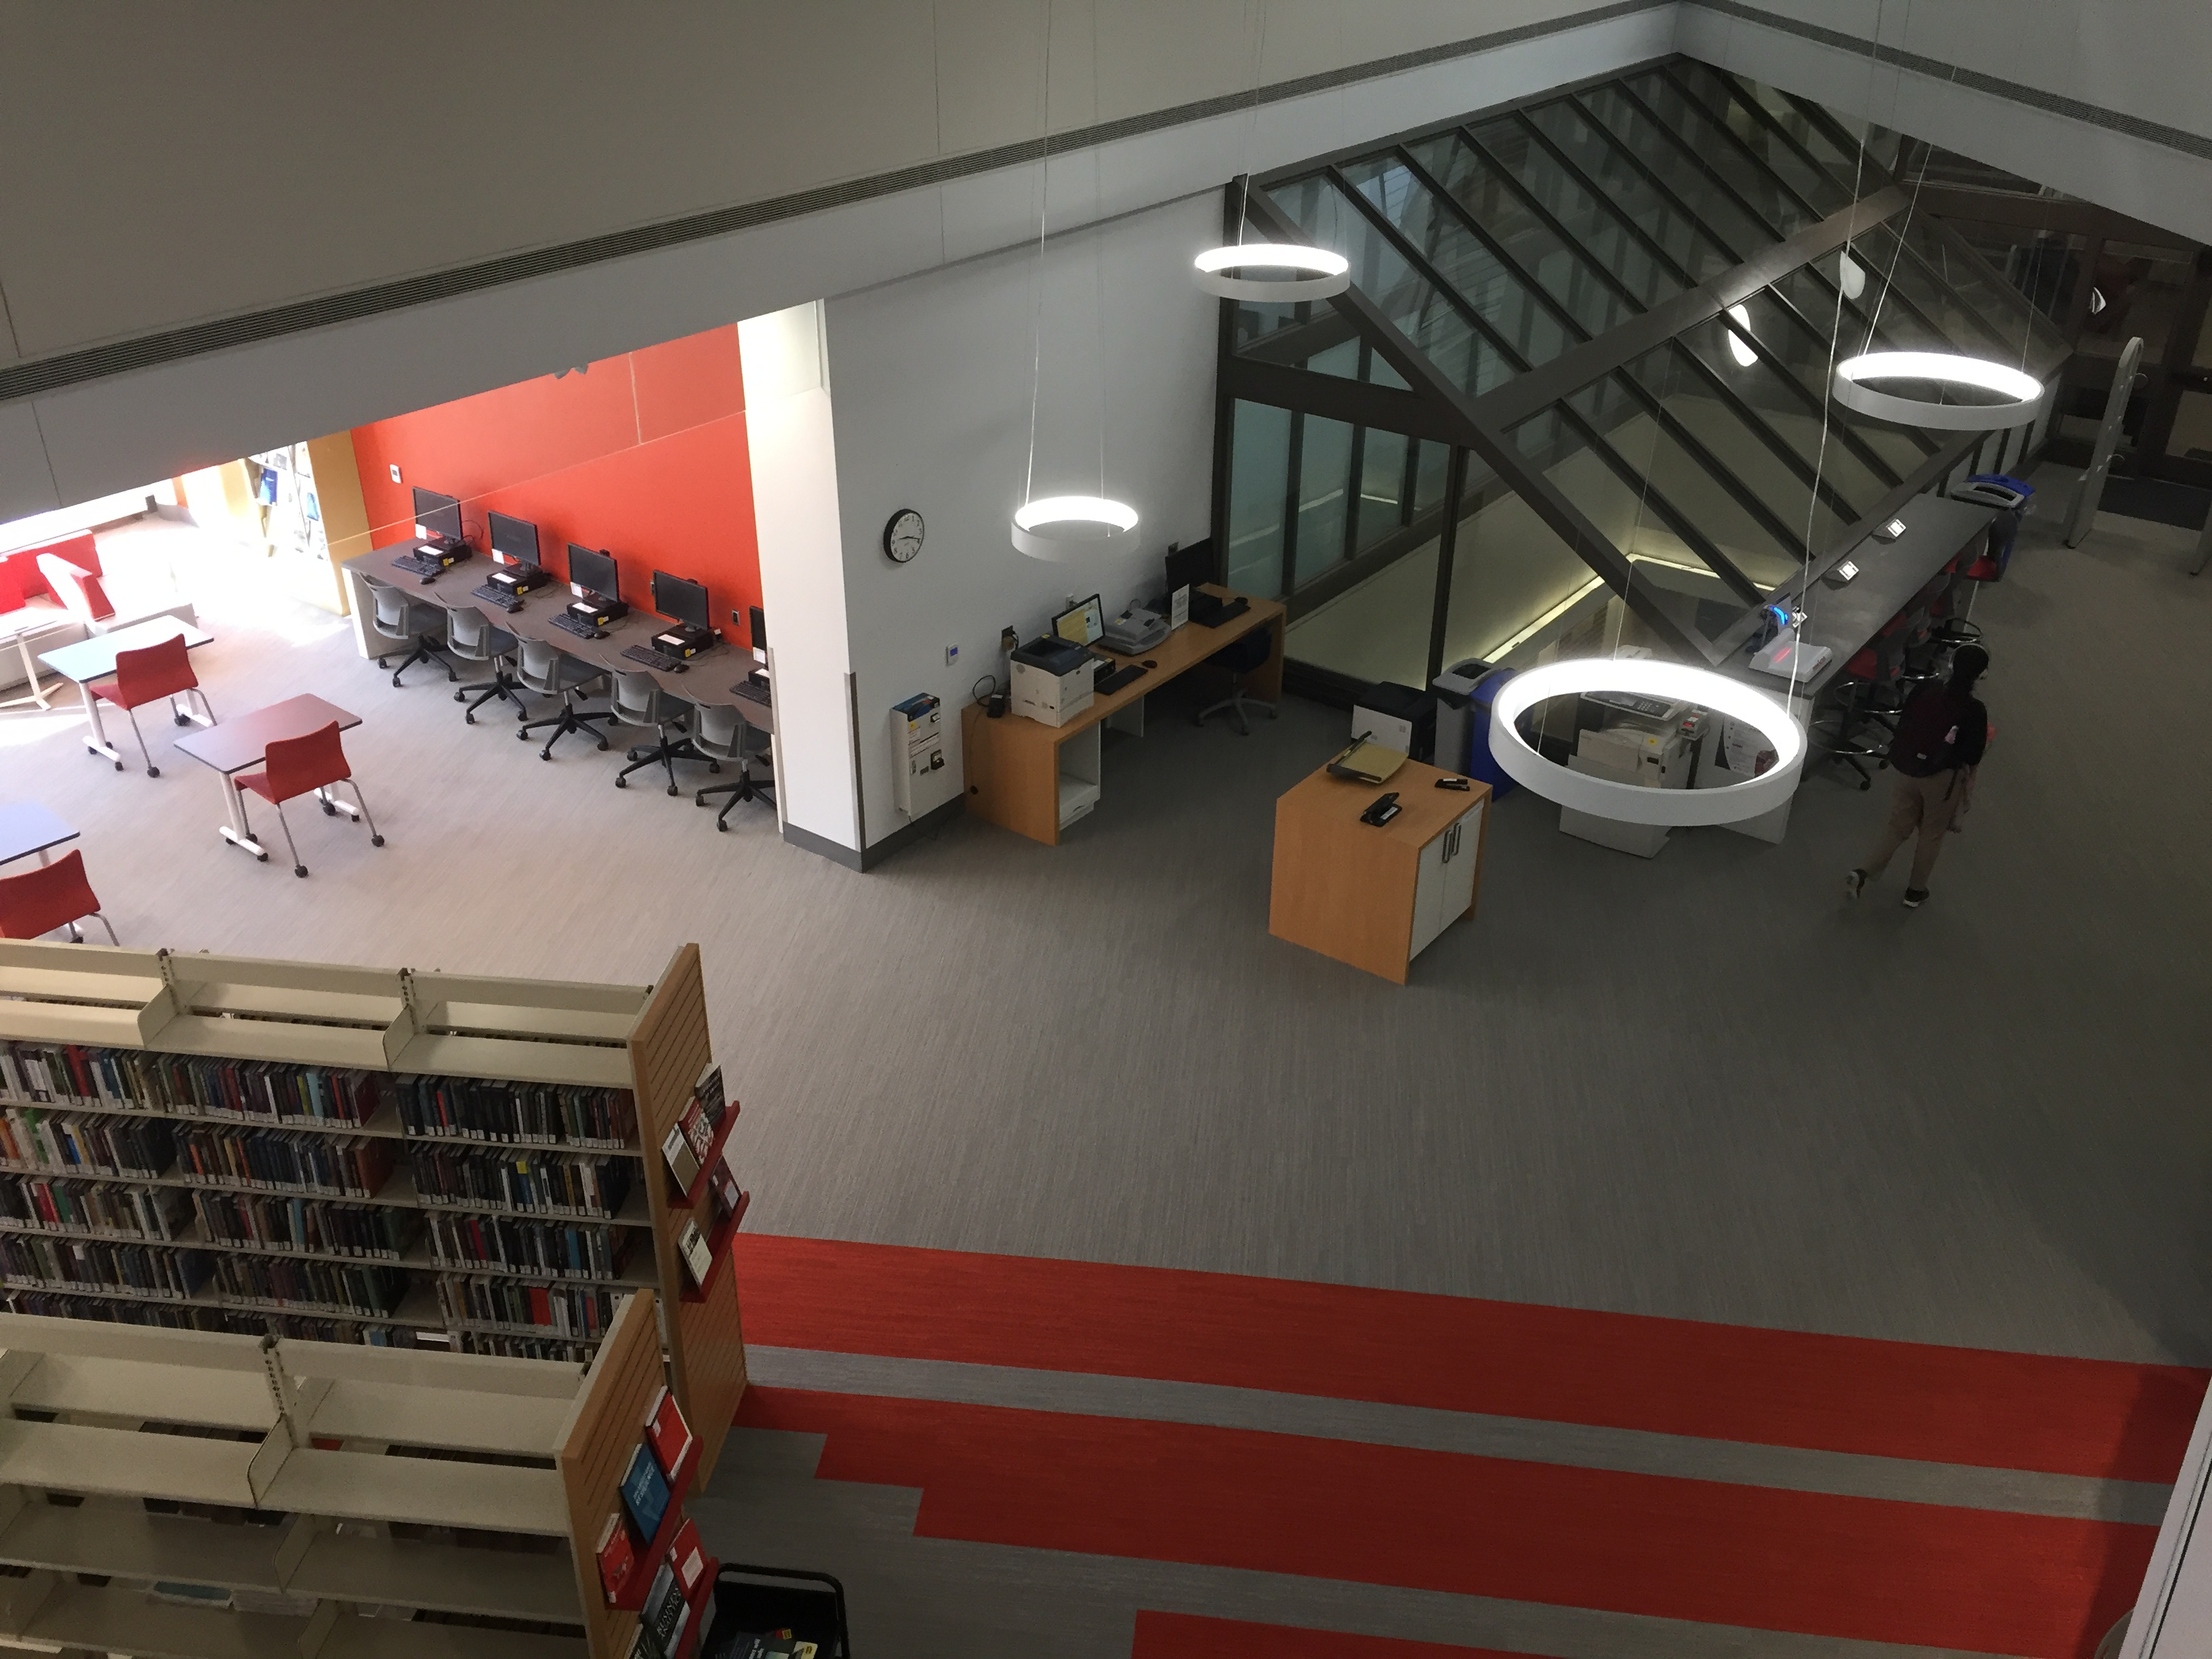 library view from above